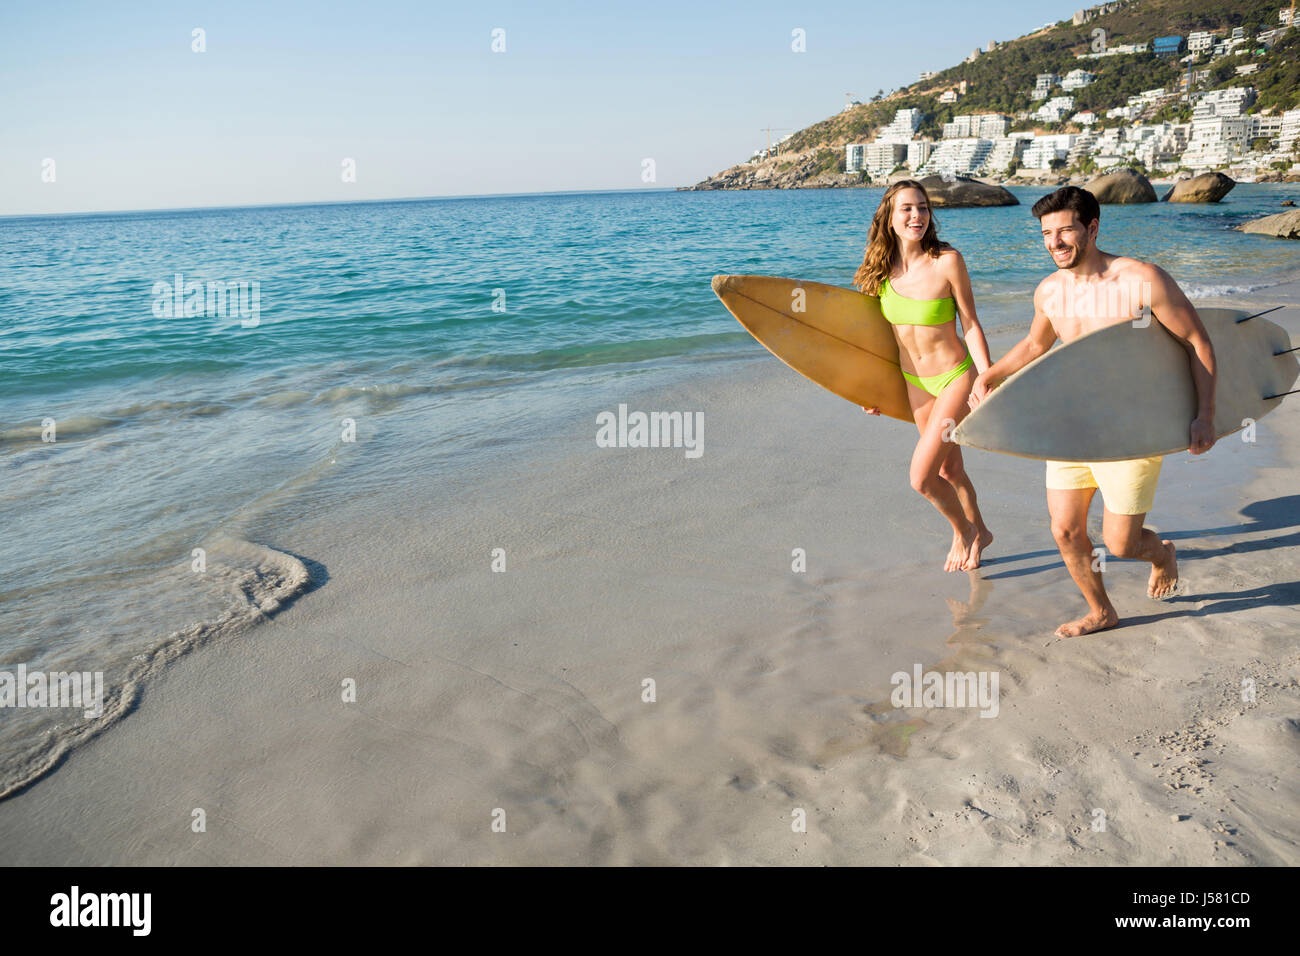 Happy couple running together while holding surfboards at beach on sunny day - Stock Image